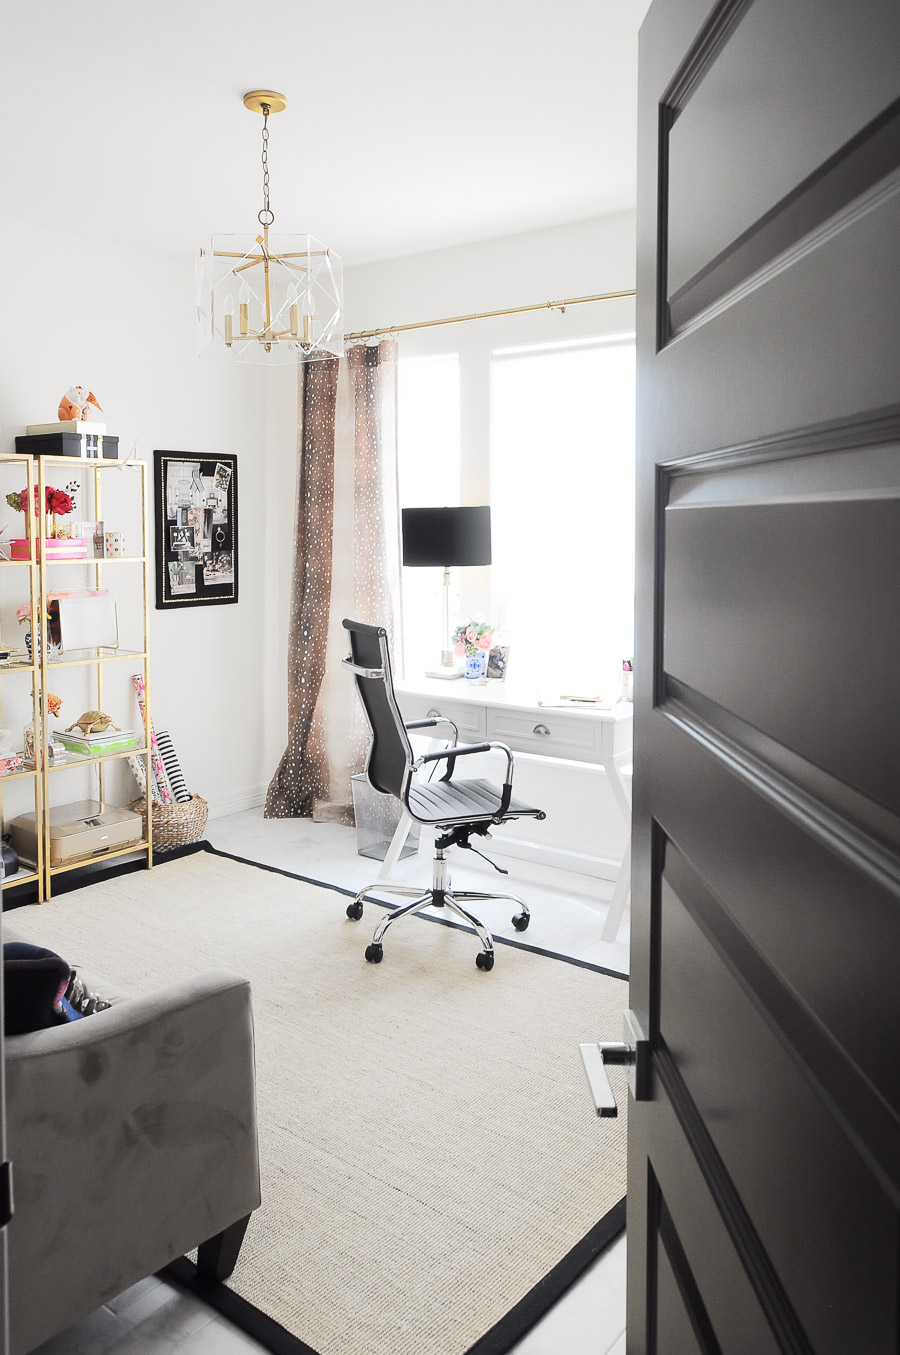 Bright white and gold home office makeover with fawn curtains, gold etageres, and a sisal rug